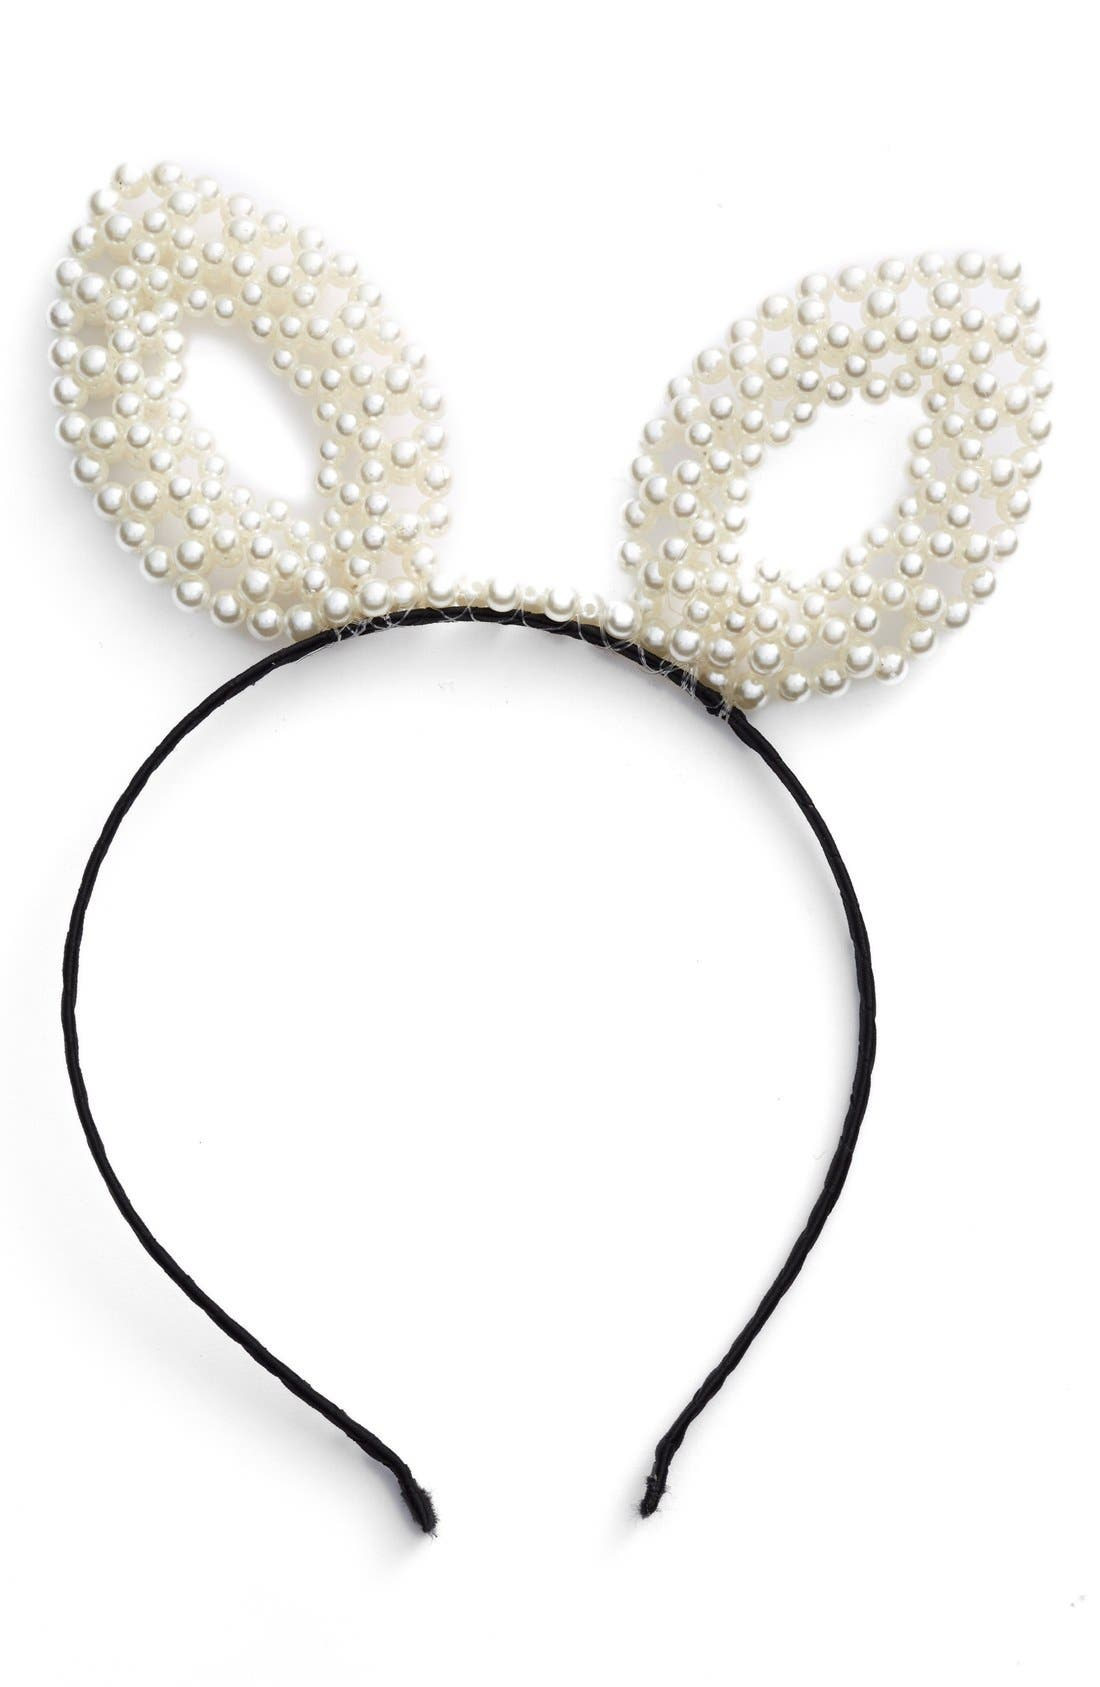 Alternate Image 1 Selected - BP. Pearly Bunny Ear Headband